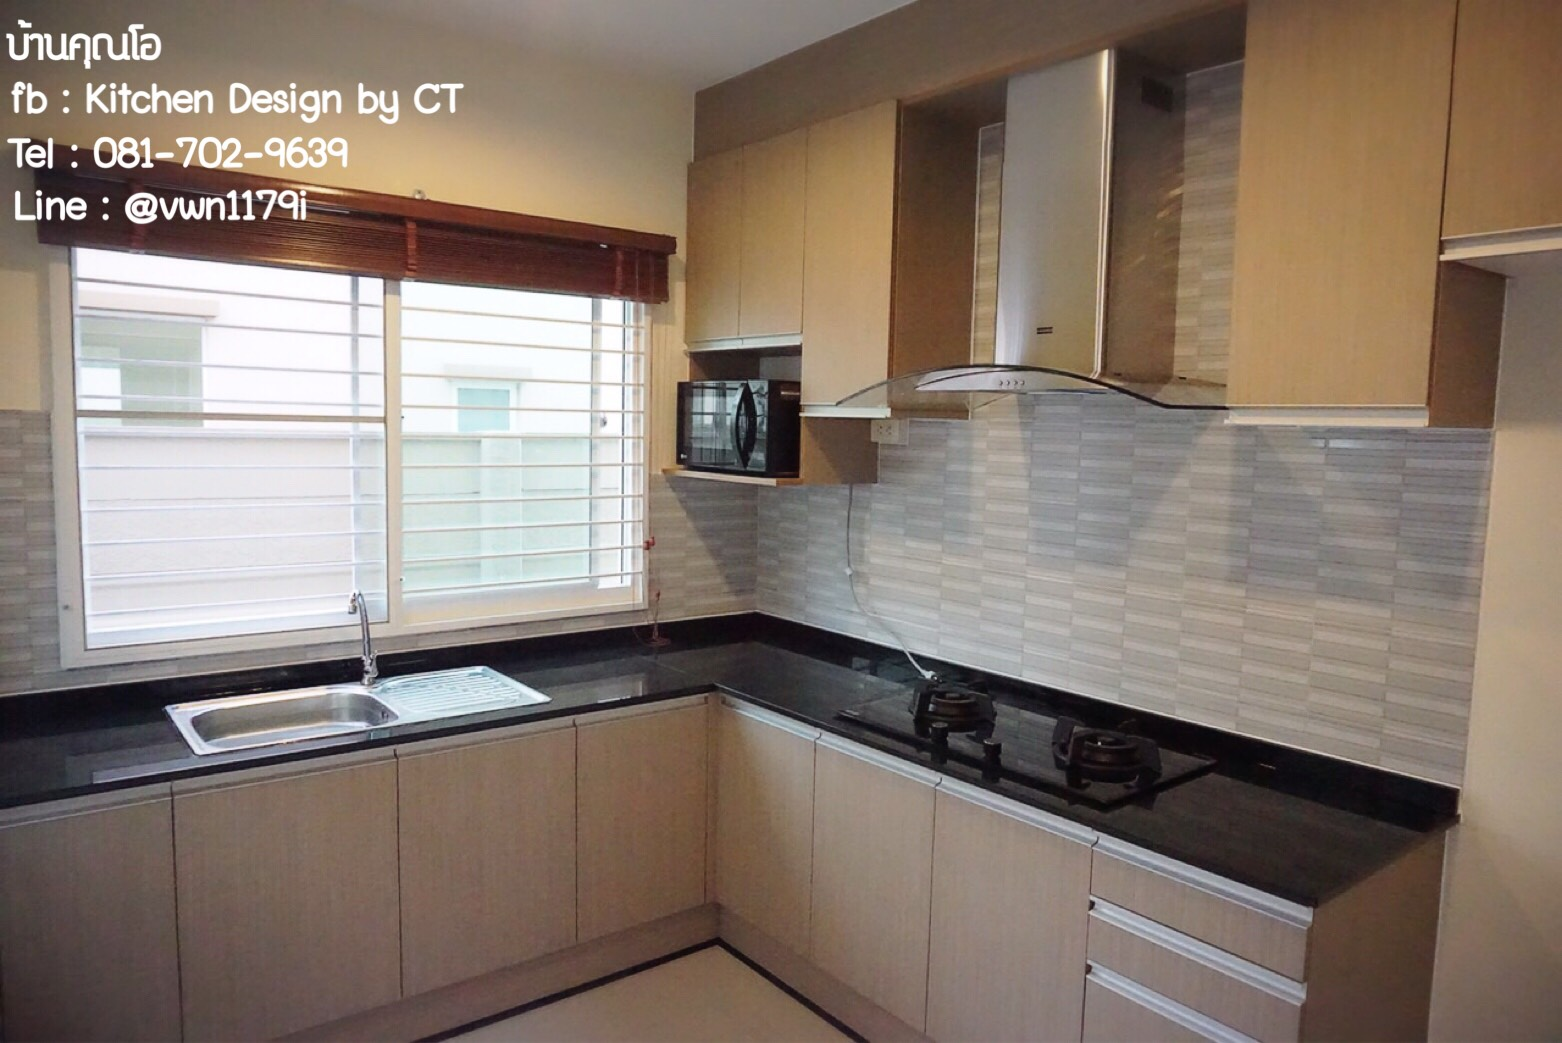 Kitchen Design By Ct